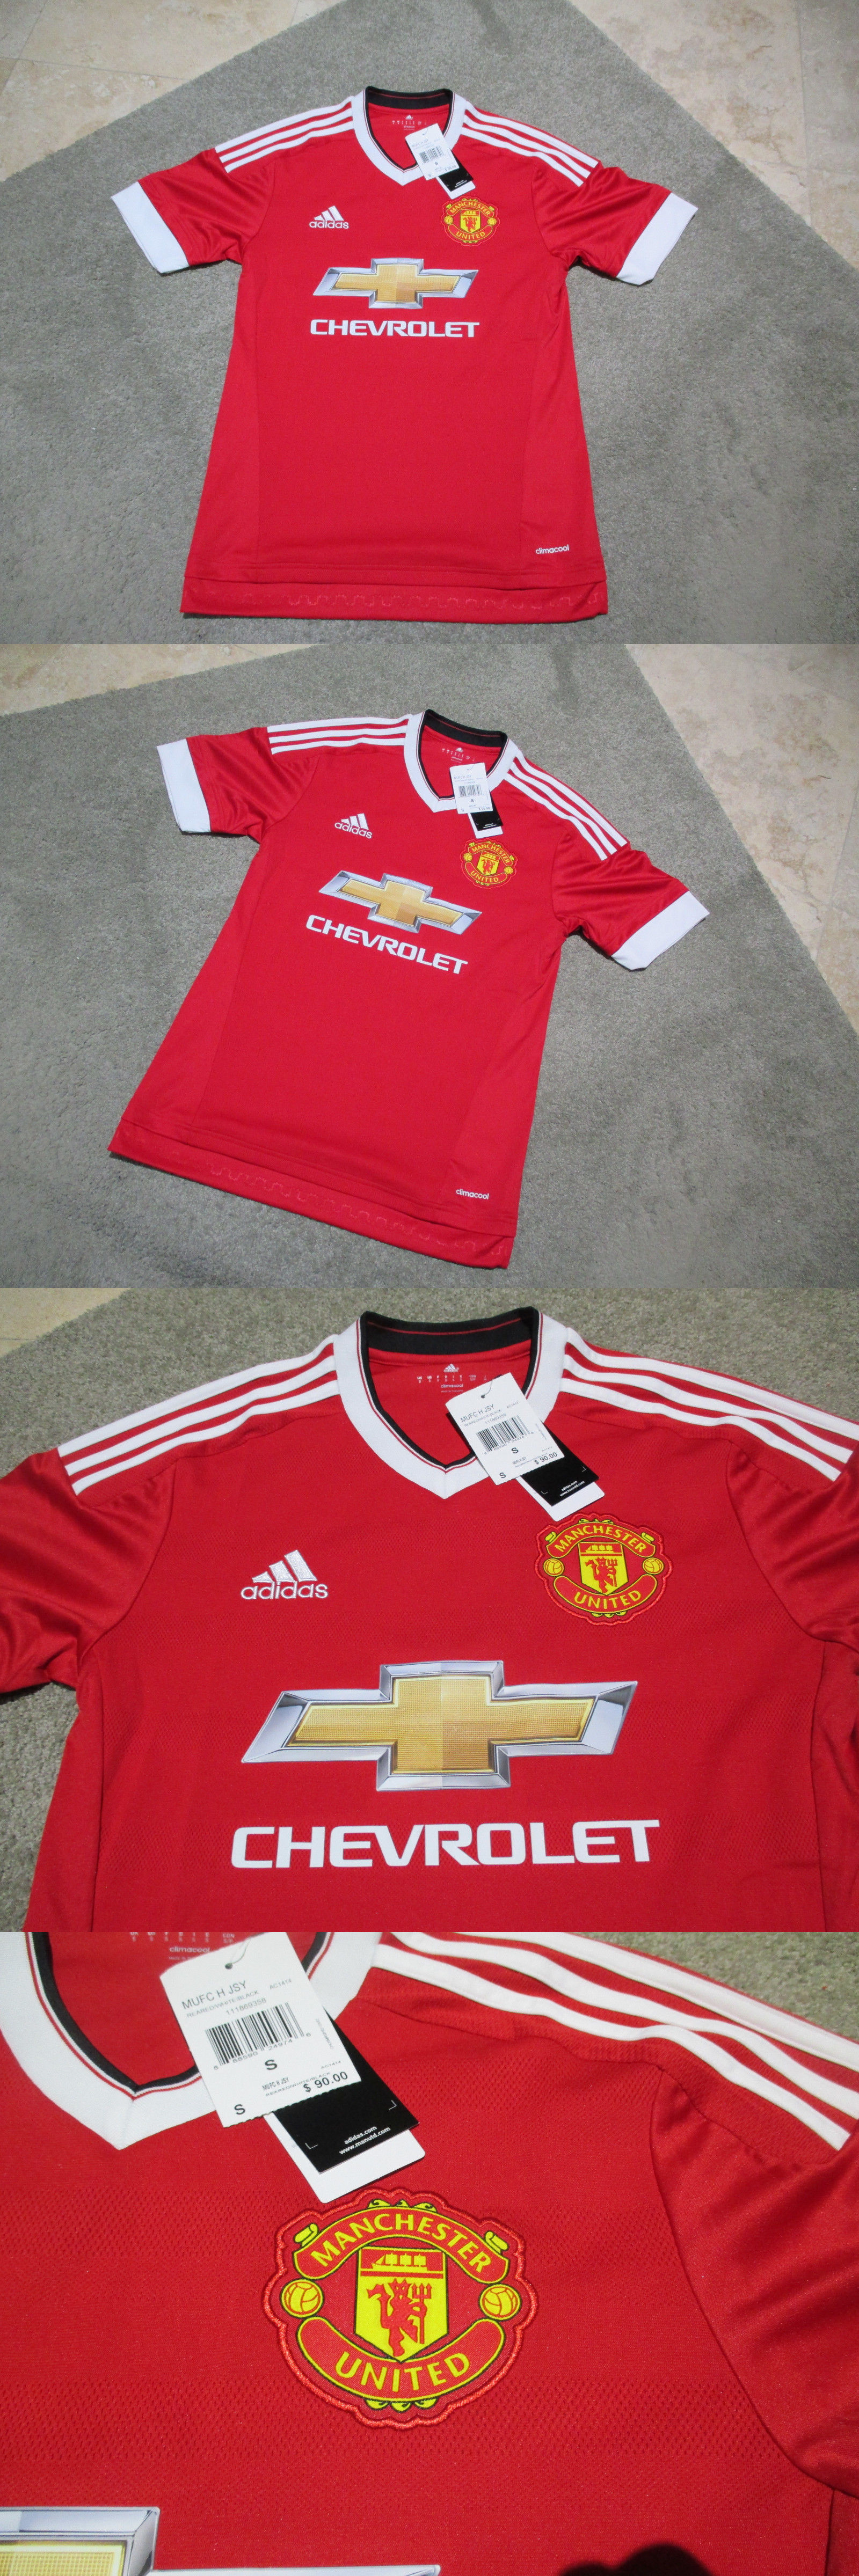 Hombres 123490: Nuevo Adidas Manchester United Soccer Jersey Adult Adult Hombres United Small 2270ac3 - accademiadellescienzedellumbria.xyz